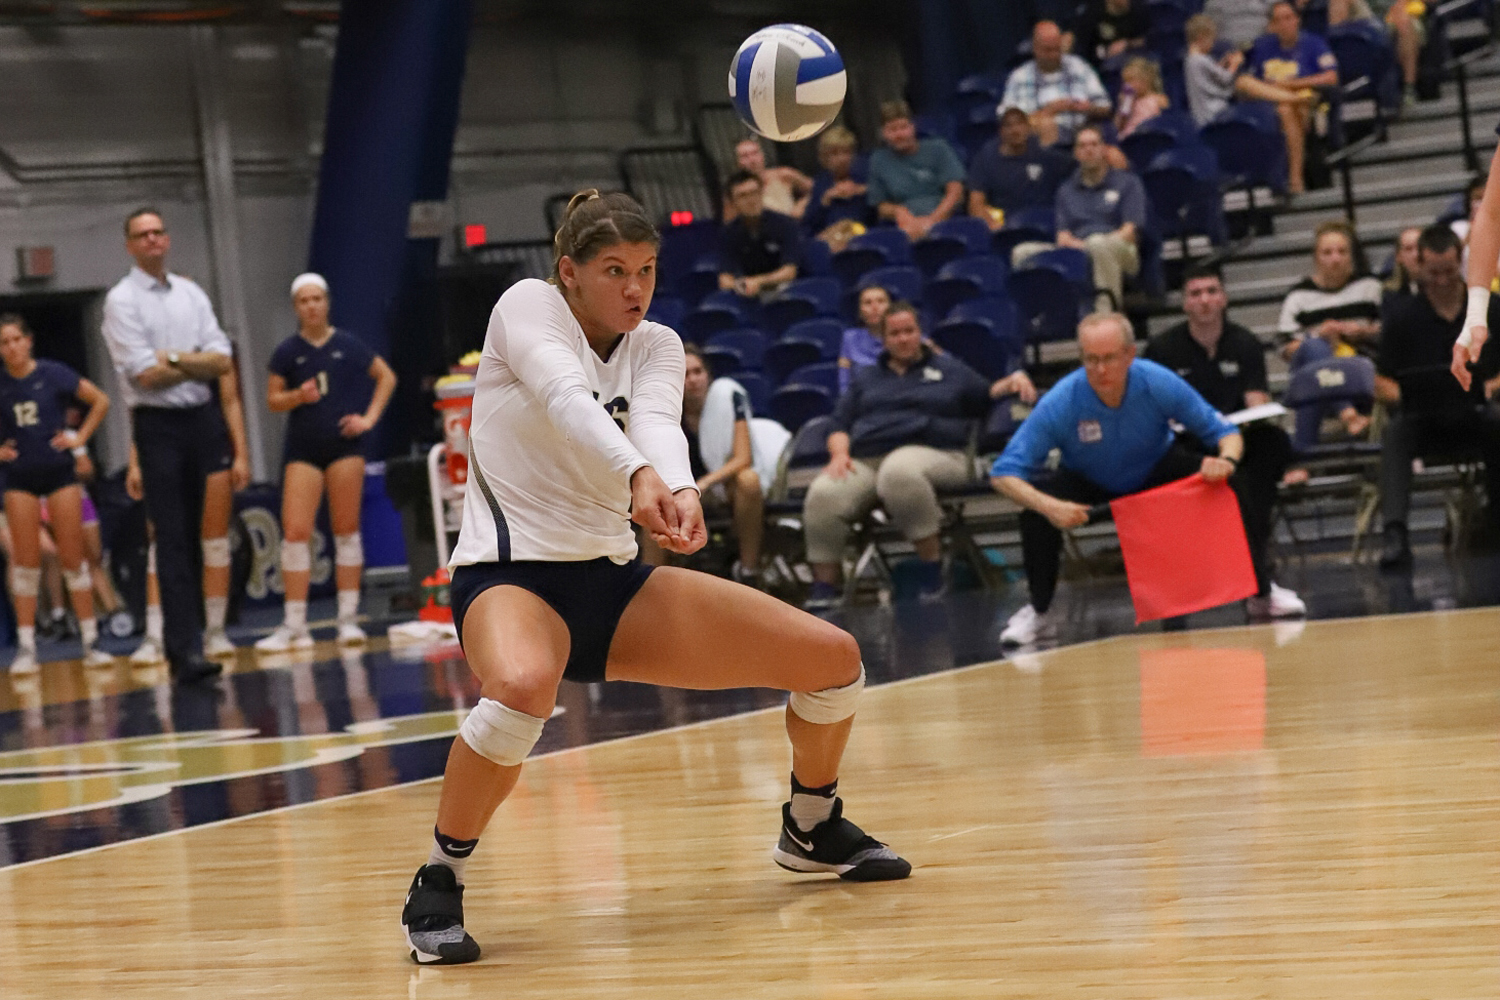 Redshirt senior Angela Seman bumps the ball during Pitt's 3-1 victory over Dayton September 7. (Photo by Kaycee Orwig | Staff Photographer)